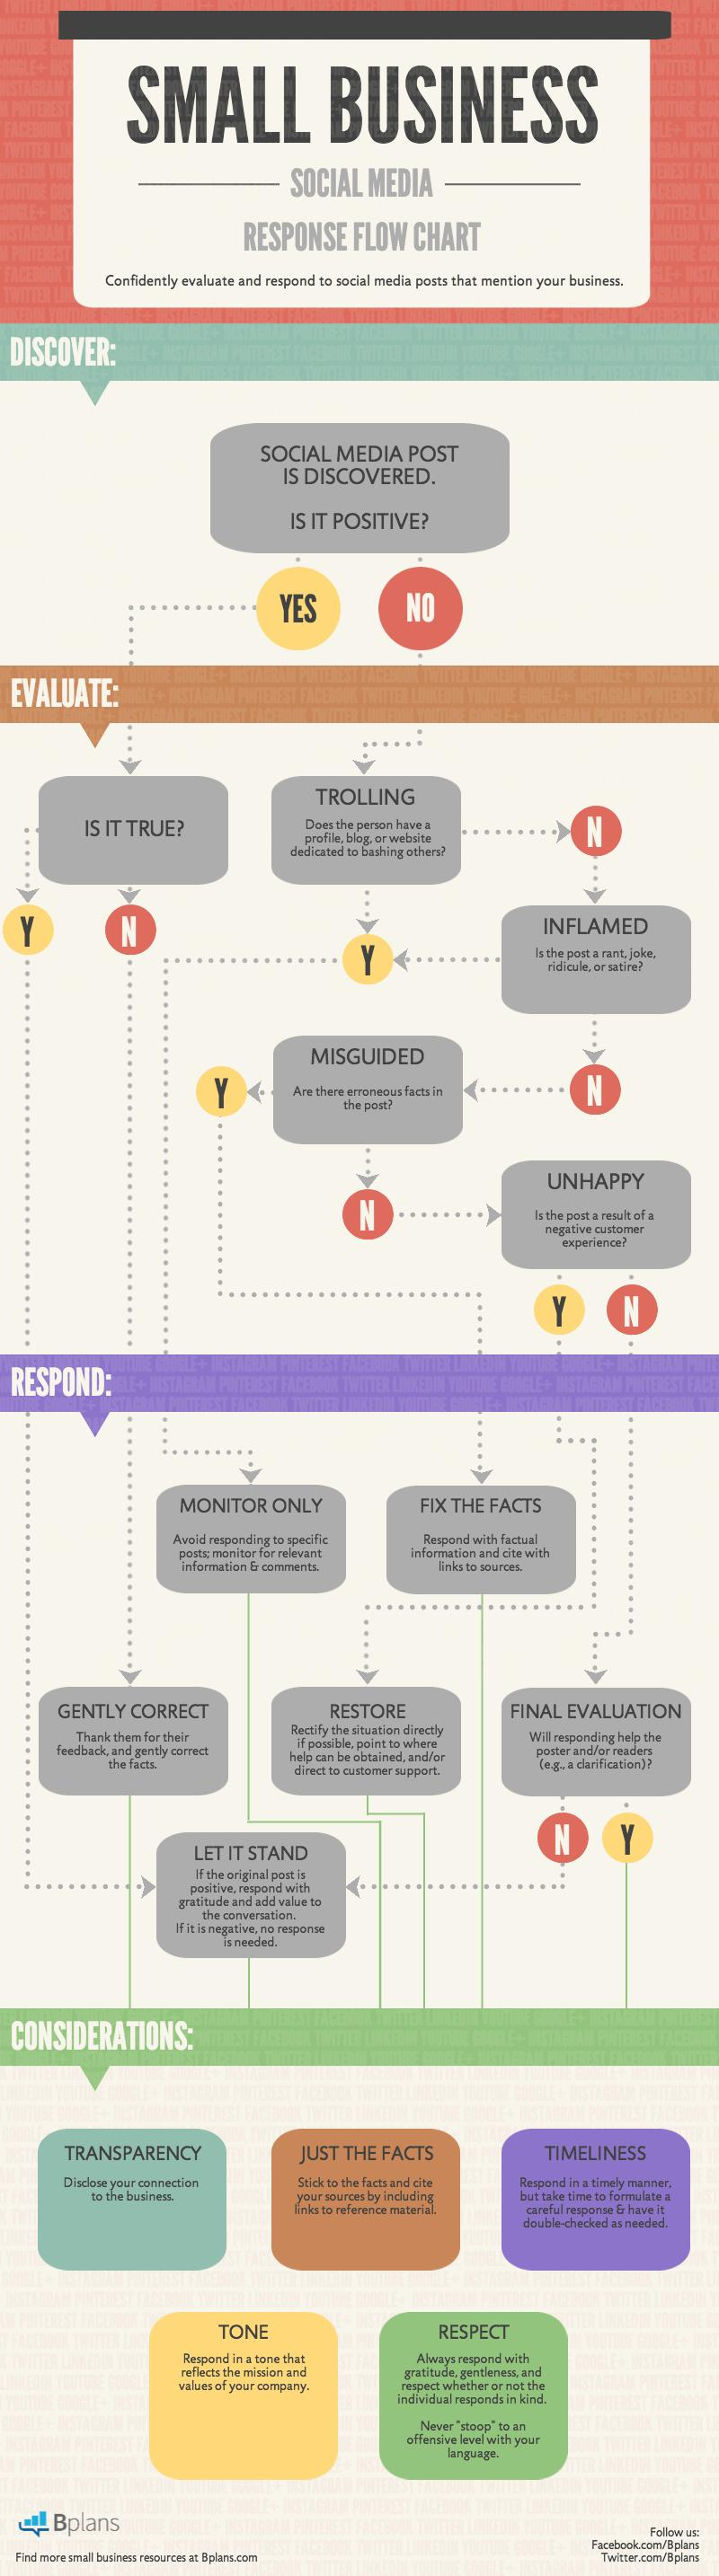 wersm-bplan-Social-Media-Response-Tree-decision-infographic